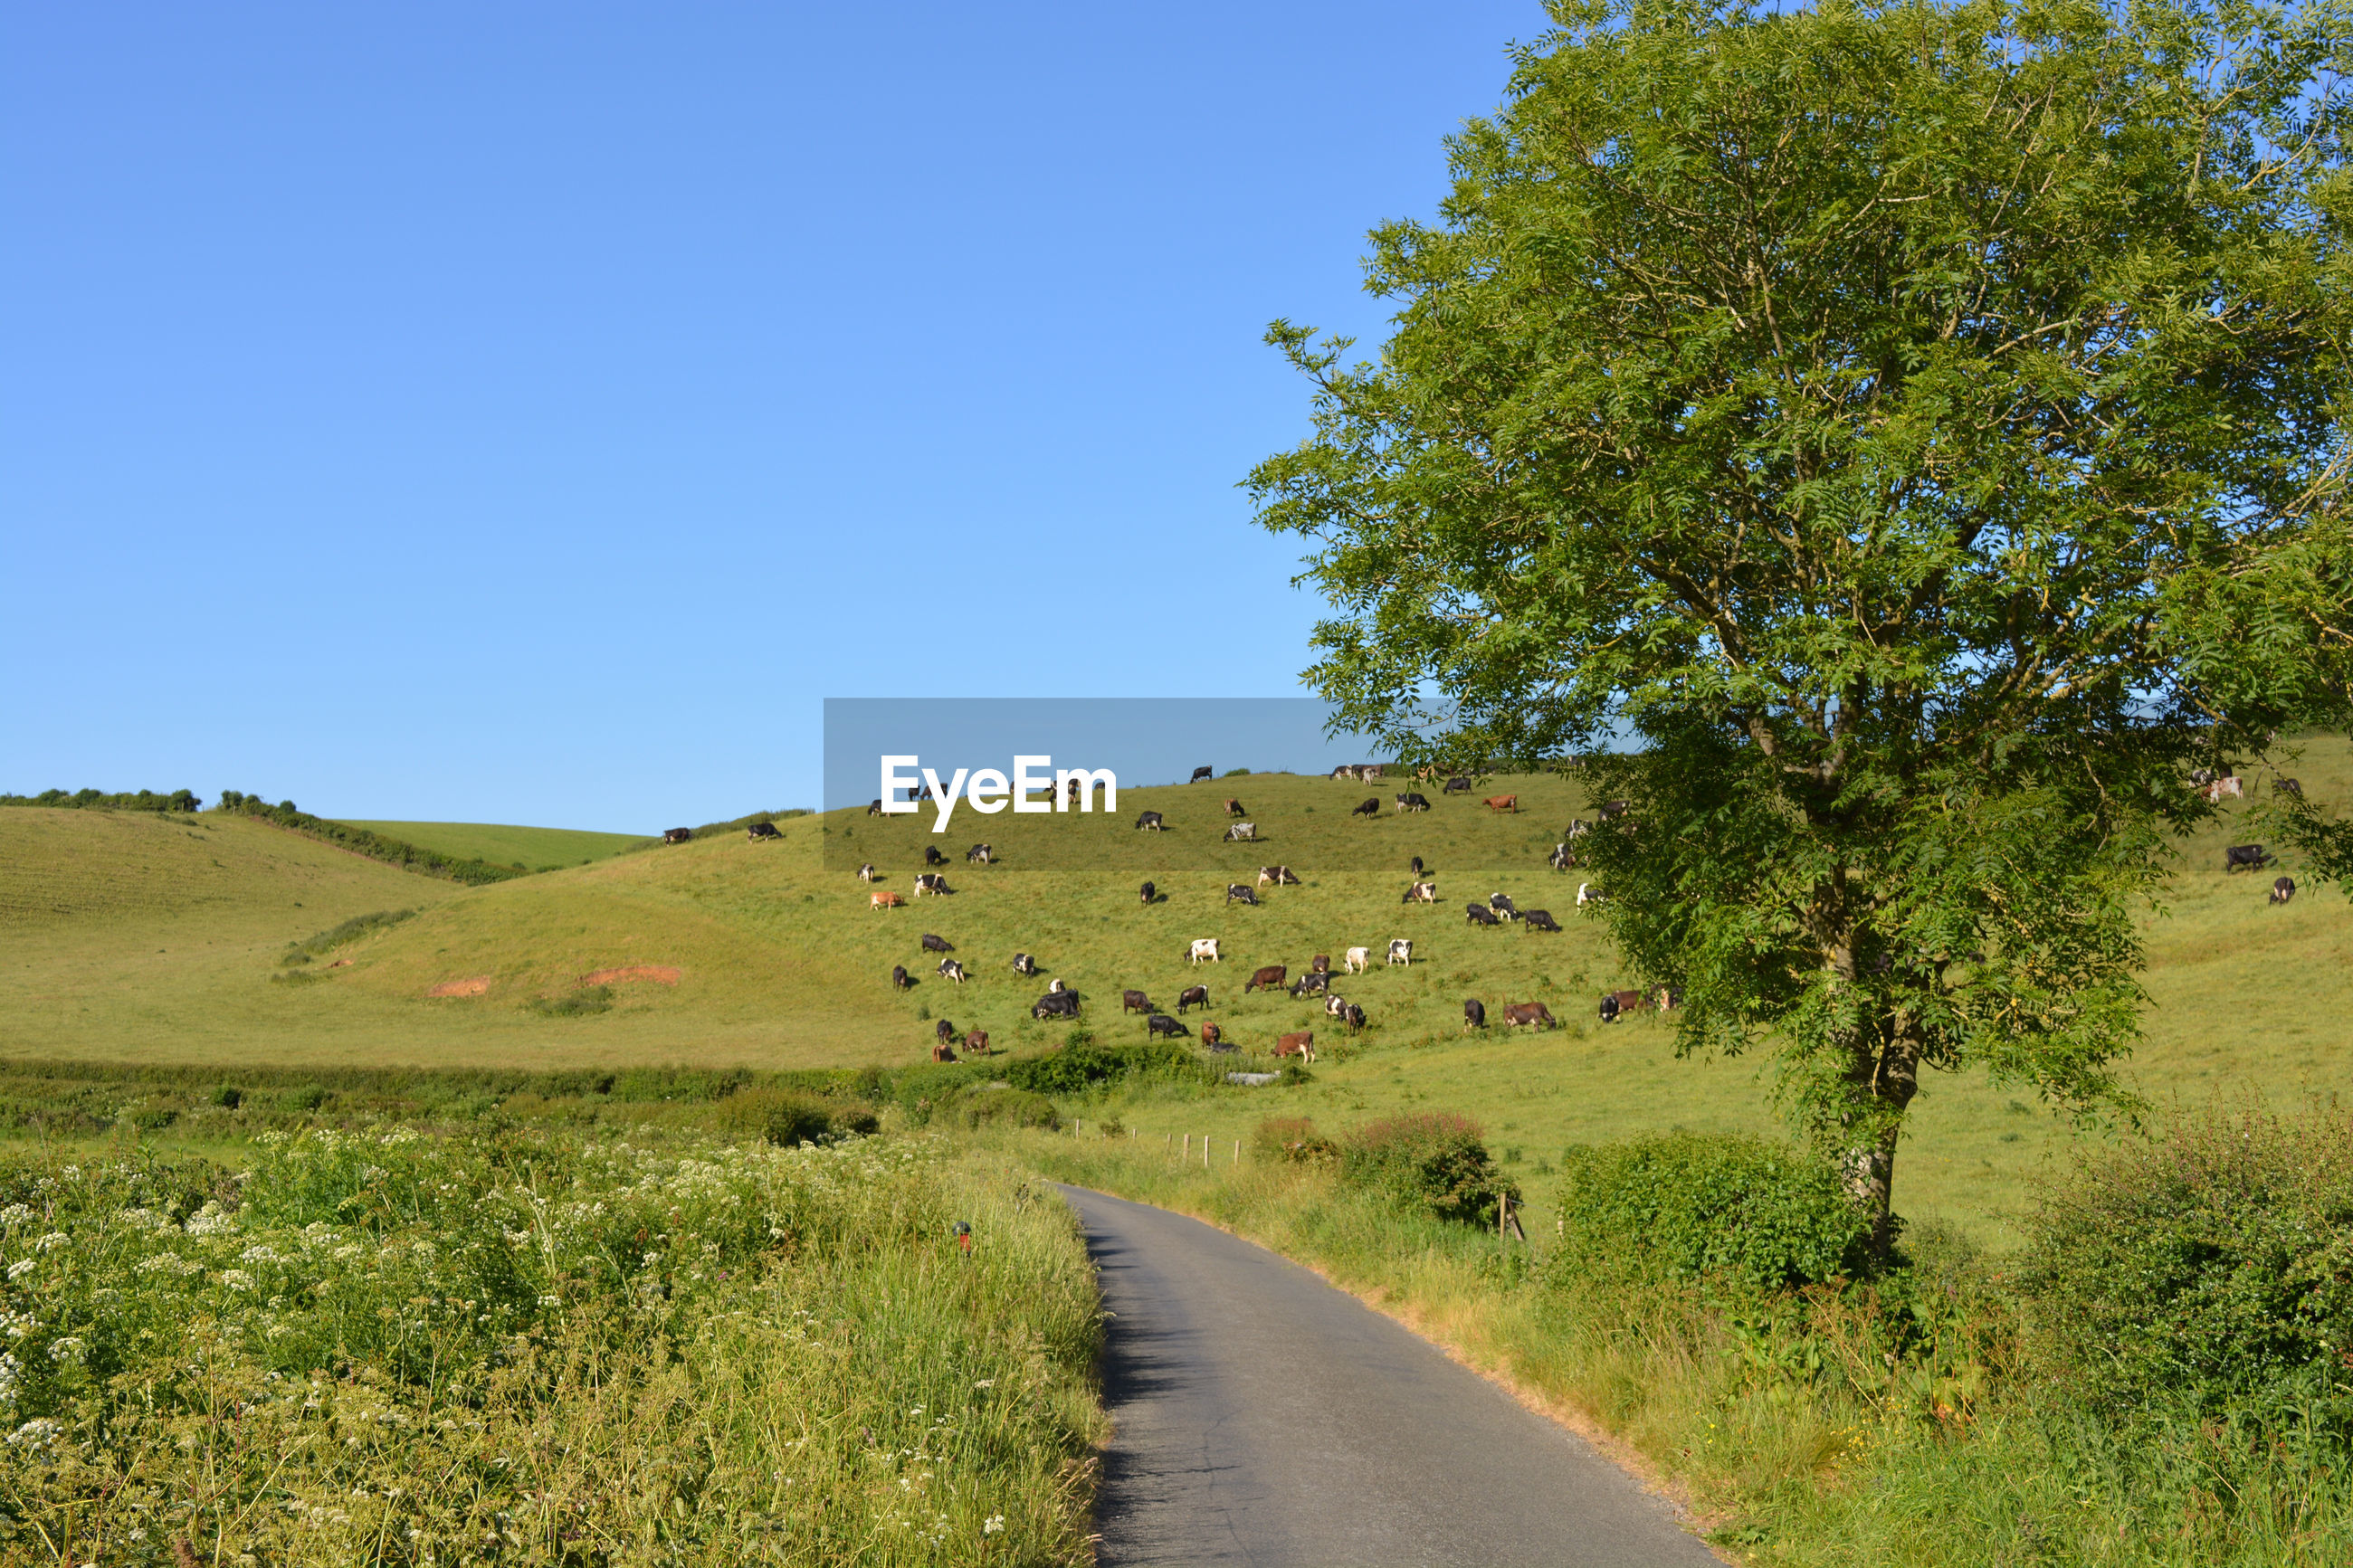 Narrow lane through green fields with cows on hillside and ash tree at roadside, dorset, england